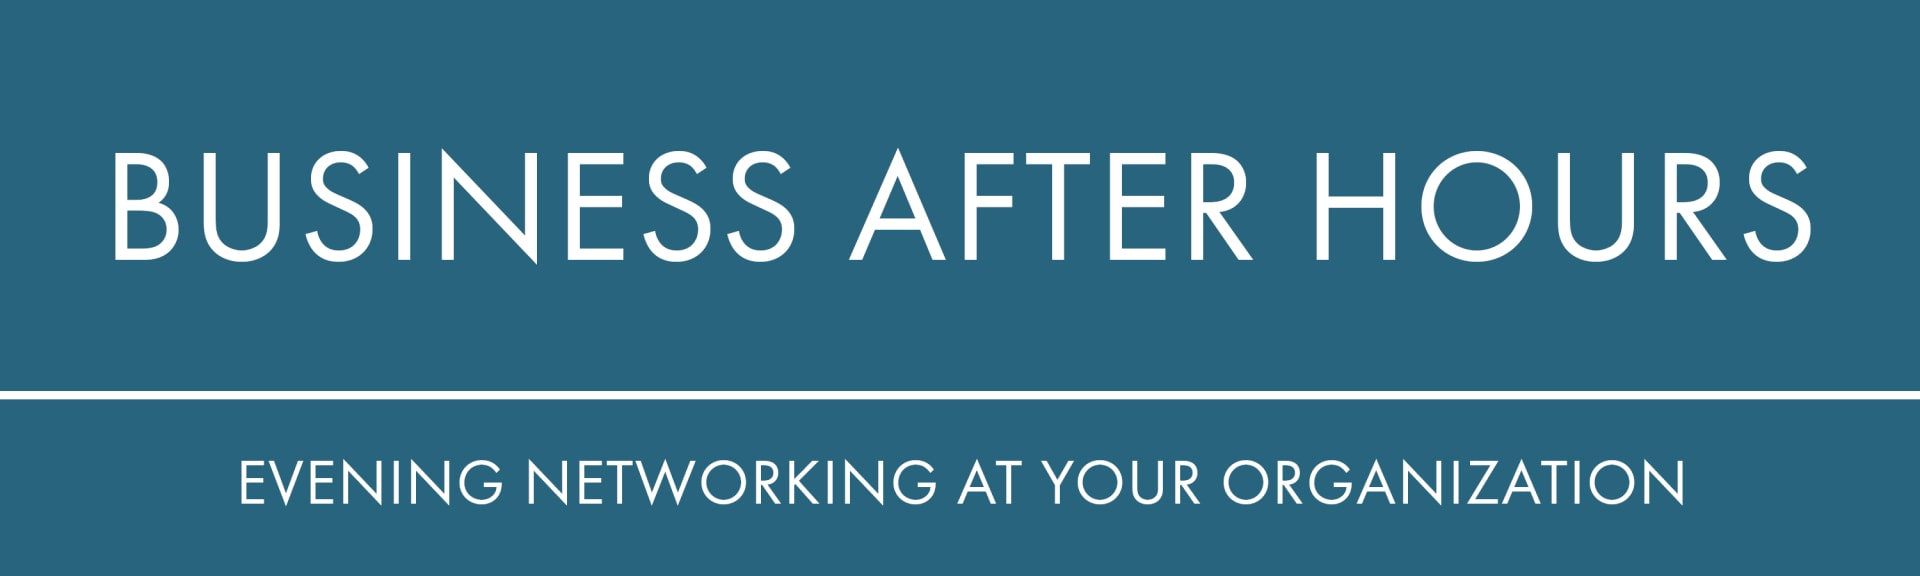 Business After Hours Greater Vancouver Chamber of Commerce evening networking organization membership Southwest Washington Business Community